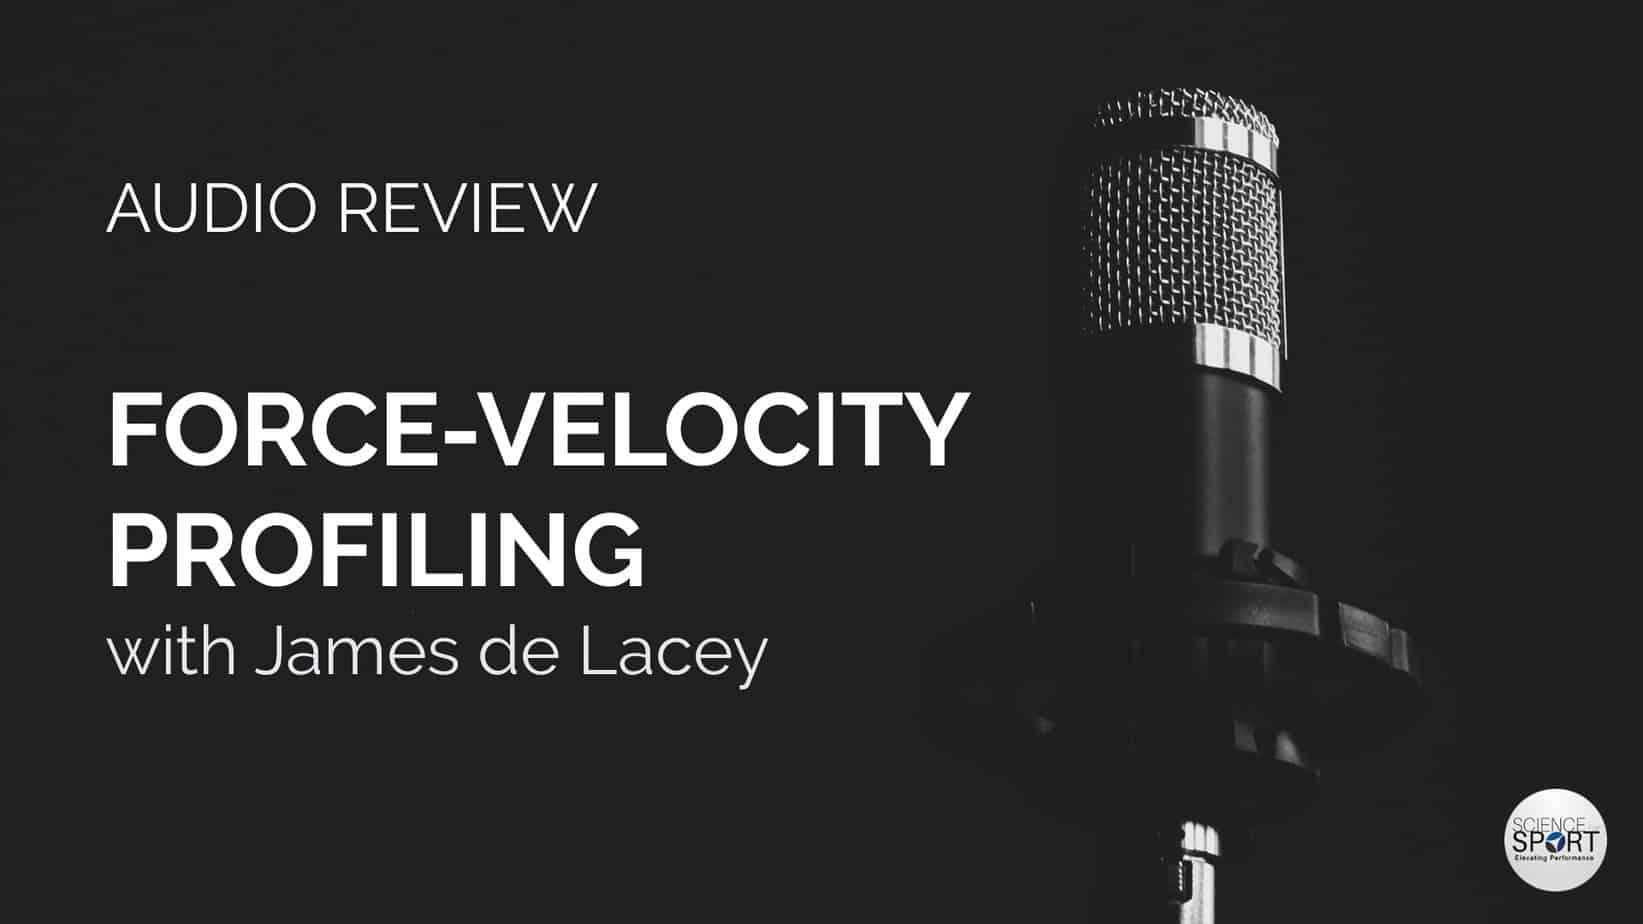 Audio Review - Science for Sport - Force-Velocity Profiling - James de Lacey